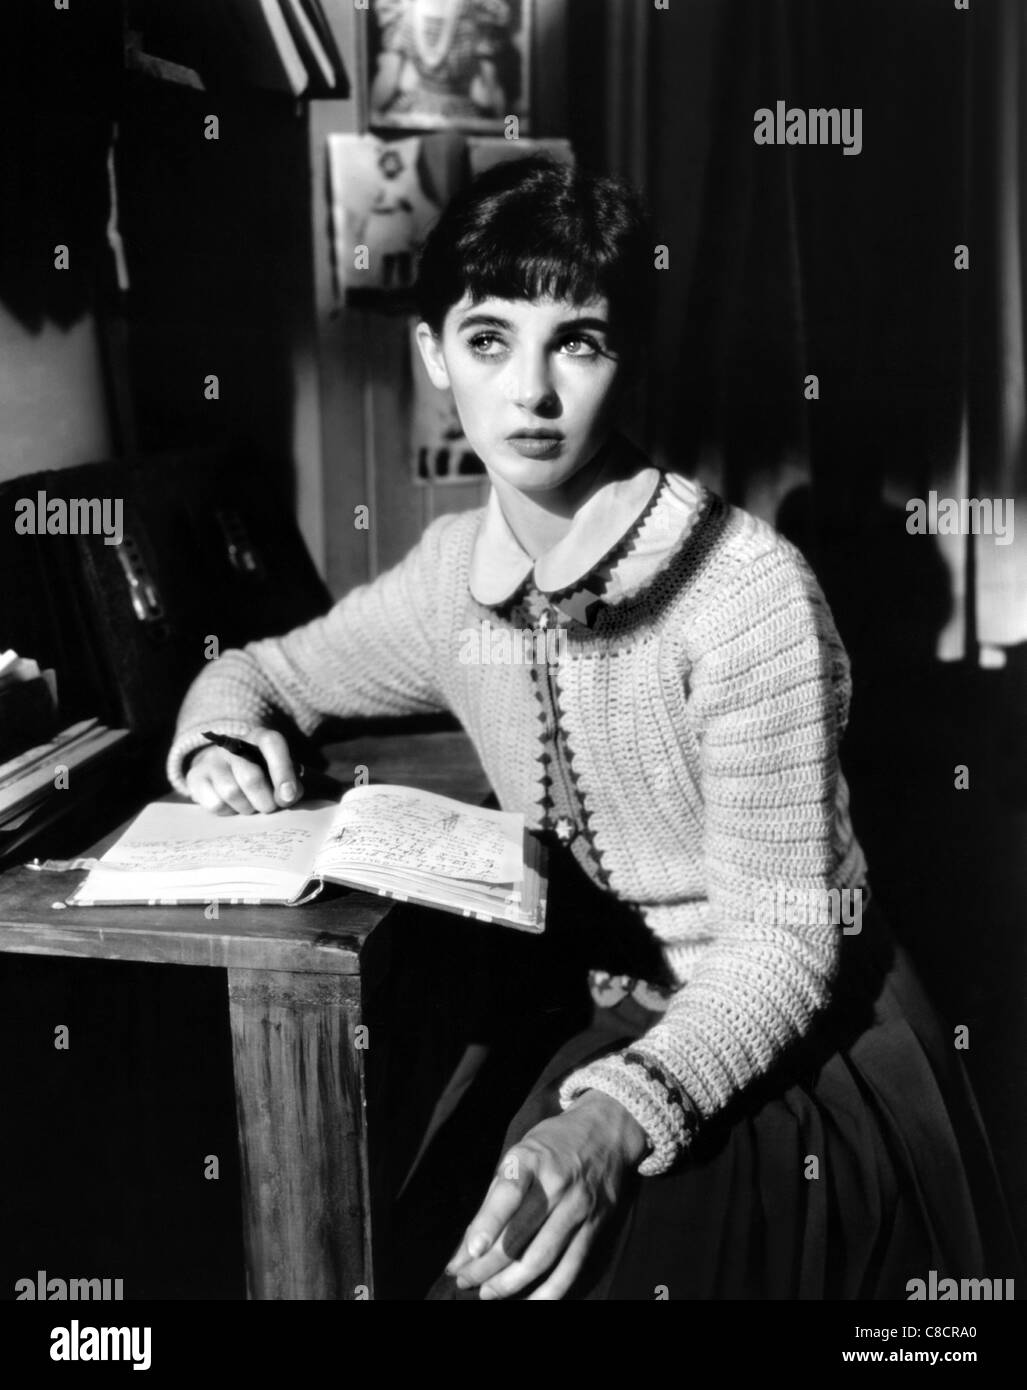 millie perkins the diary of anne frank 1959 stock photo